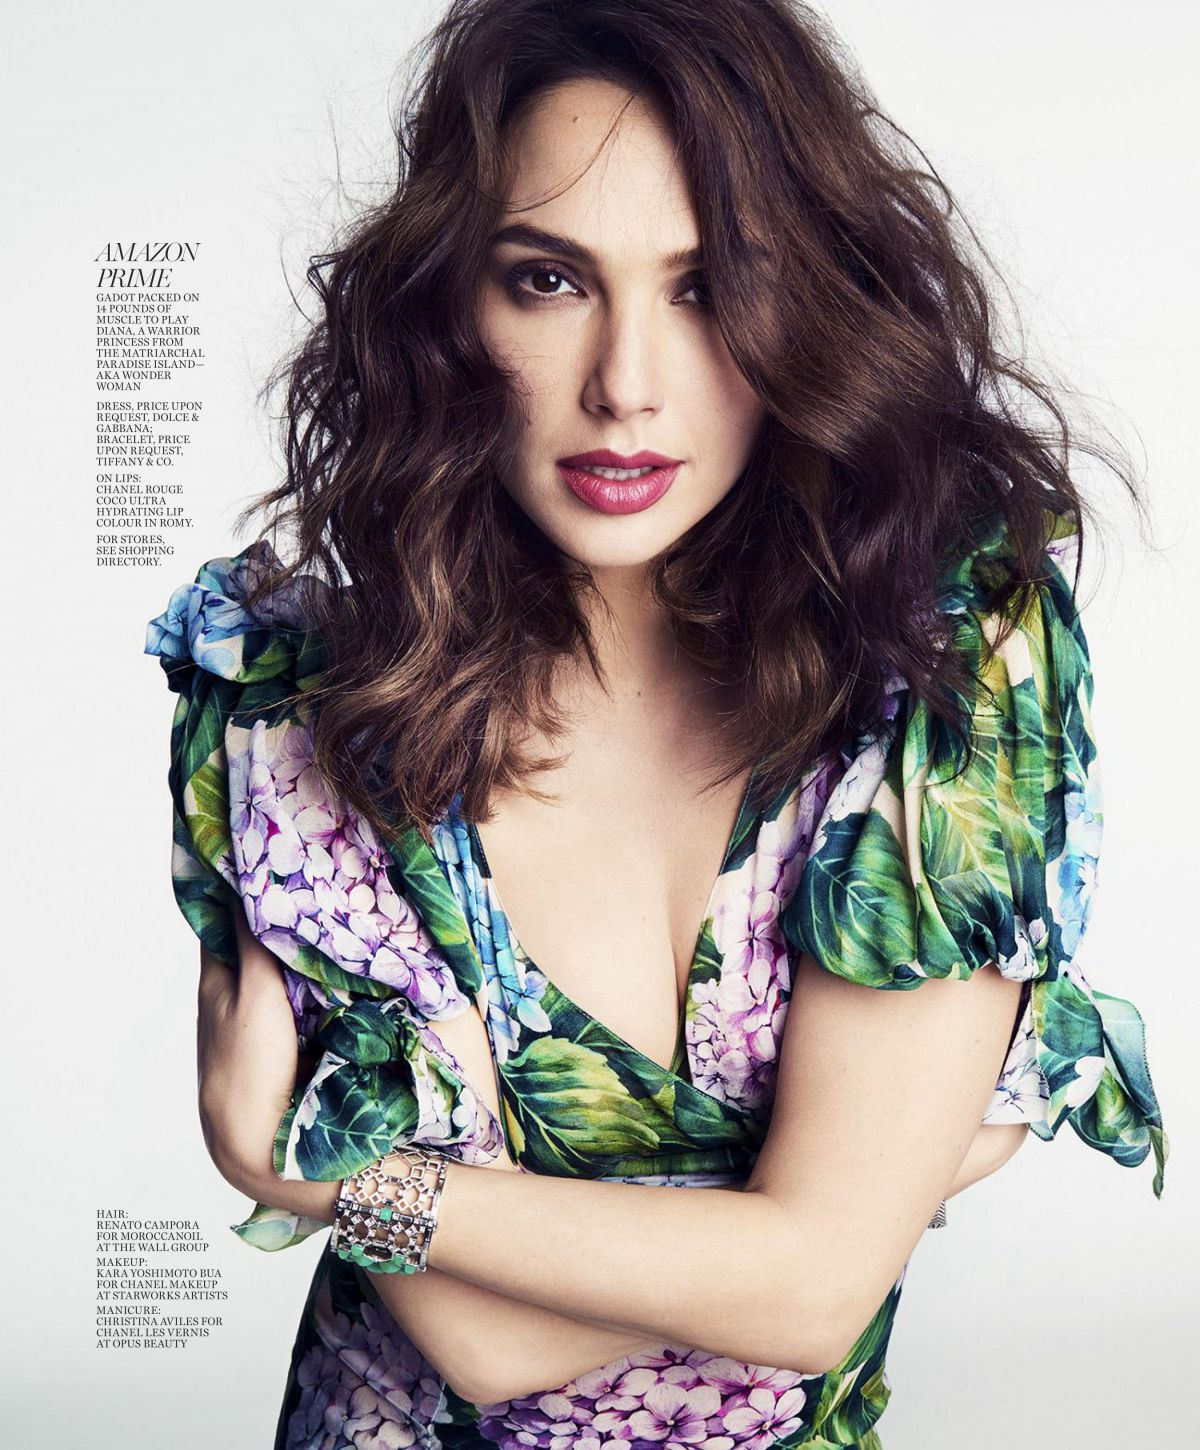 Watch Gal gadot empire magazine uk april 2019 issue video